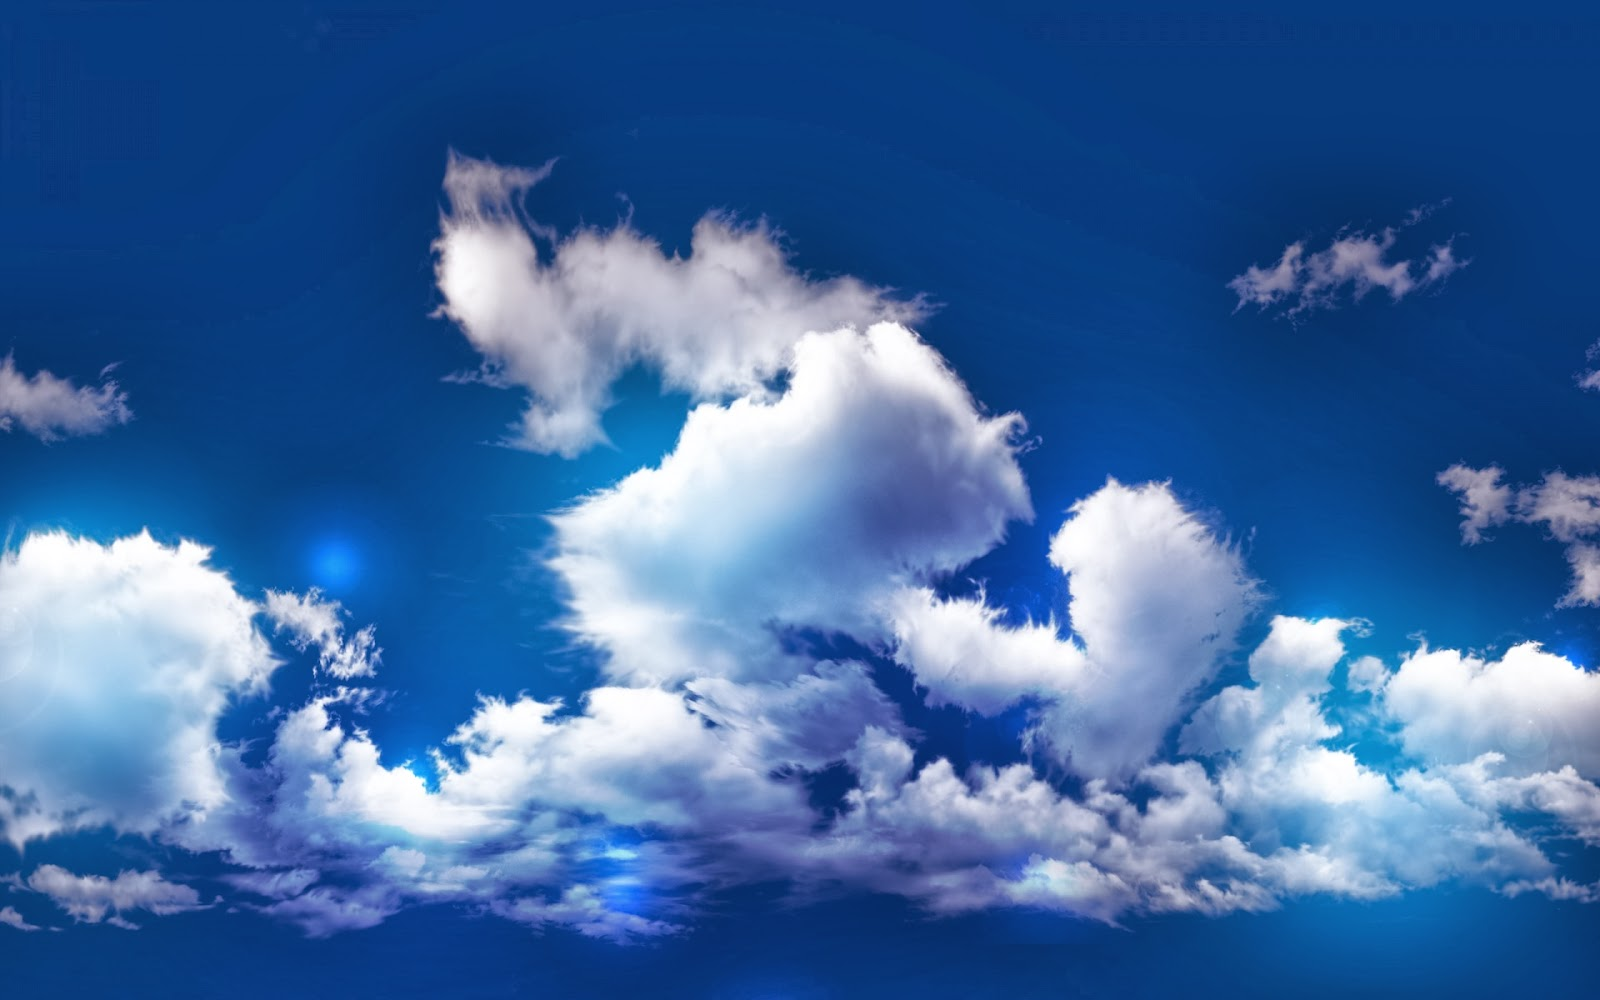 Beautiful Cloudy Sky Beautiful Nature Images And Wallpapers